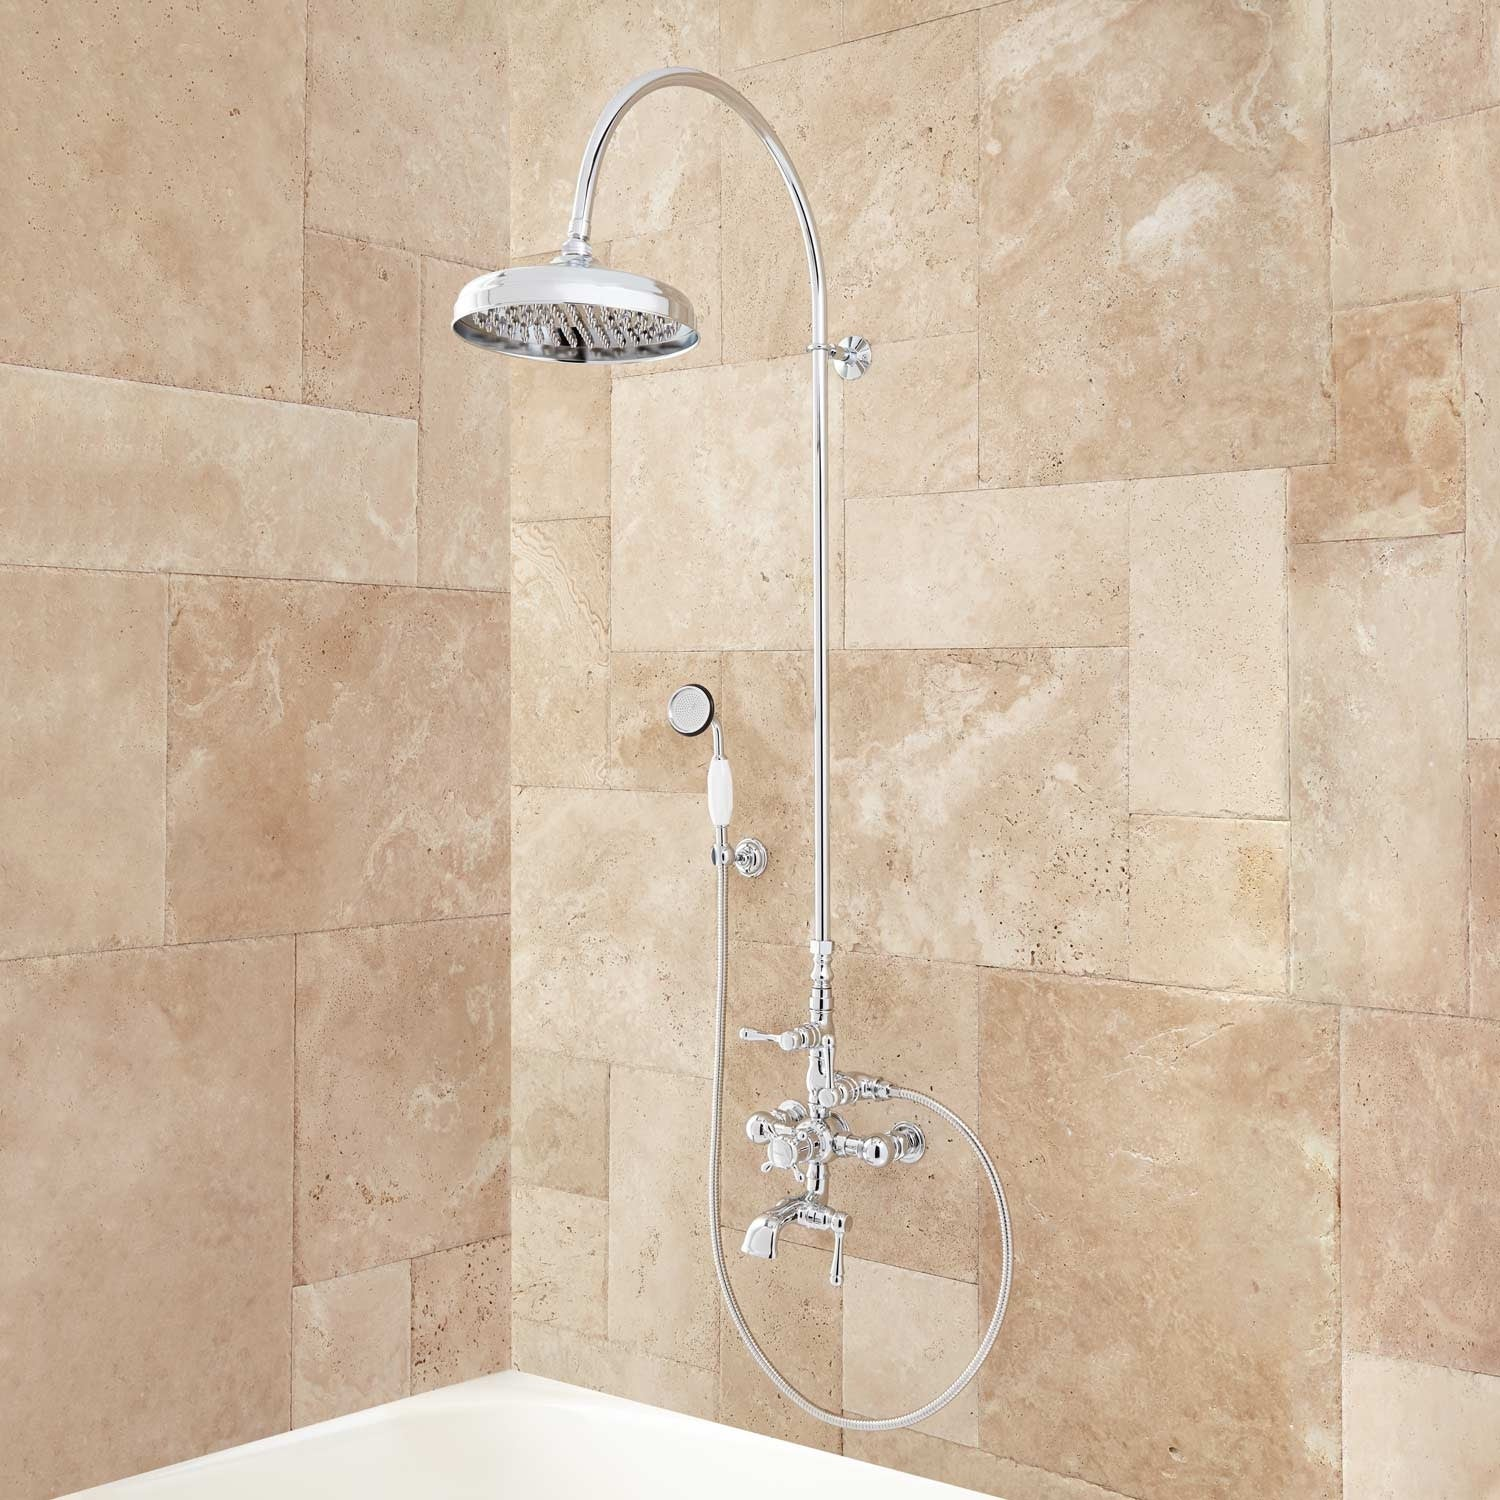 Exposed Pipe Shower System With Tub Faucet.Signature Hardware 905351 Oxford Exposed Thermostatic Tub And Shower System With Hand Shower And Tub Spout N A